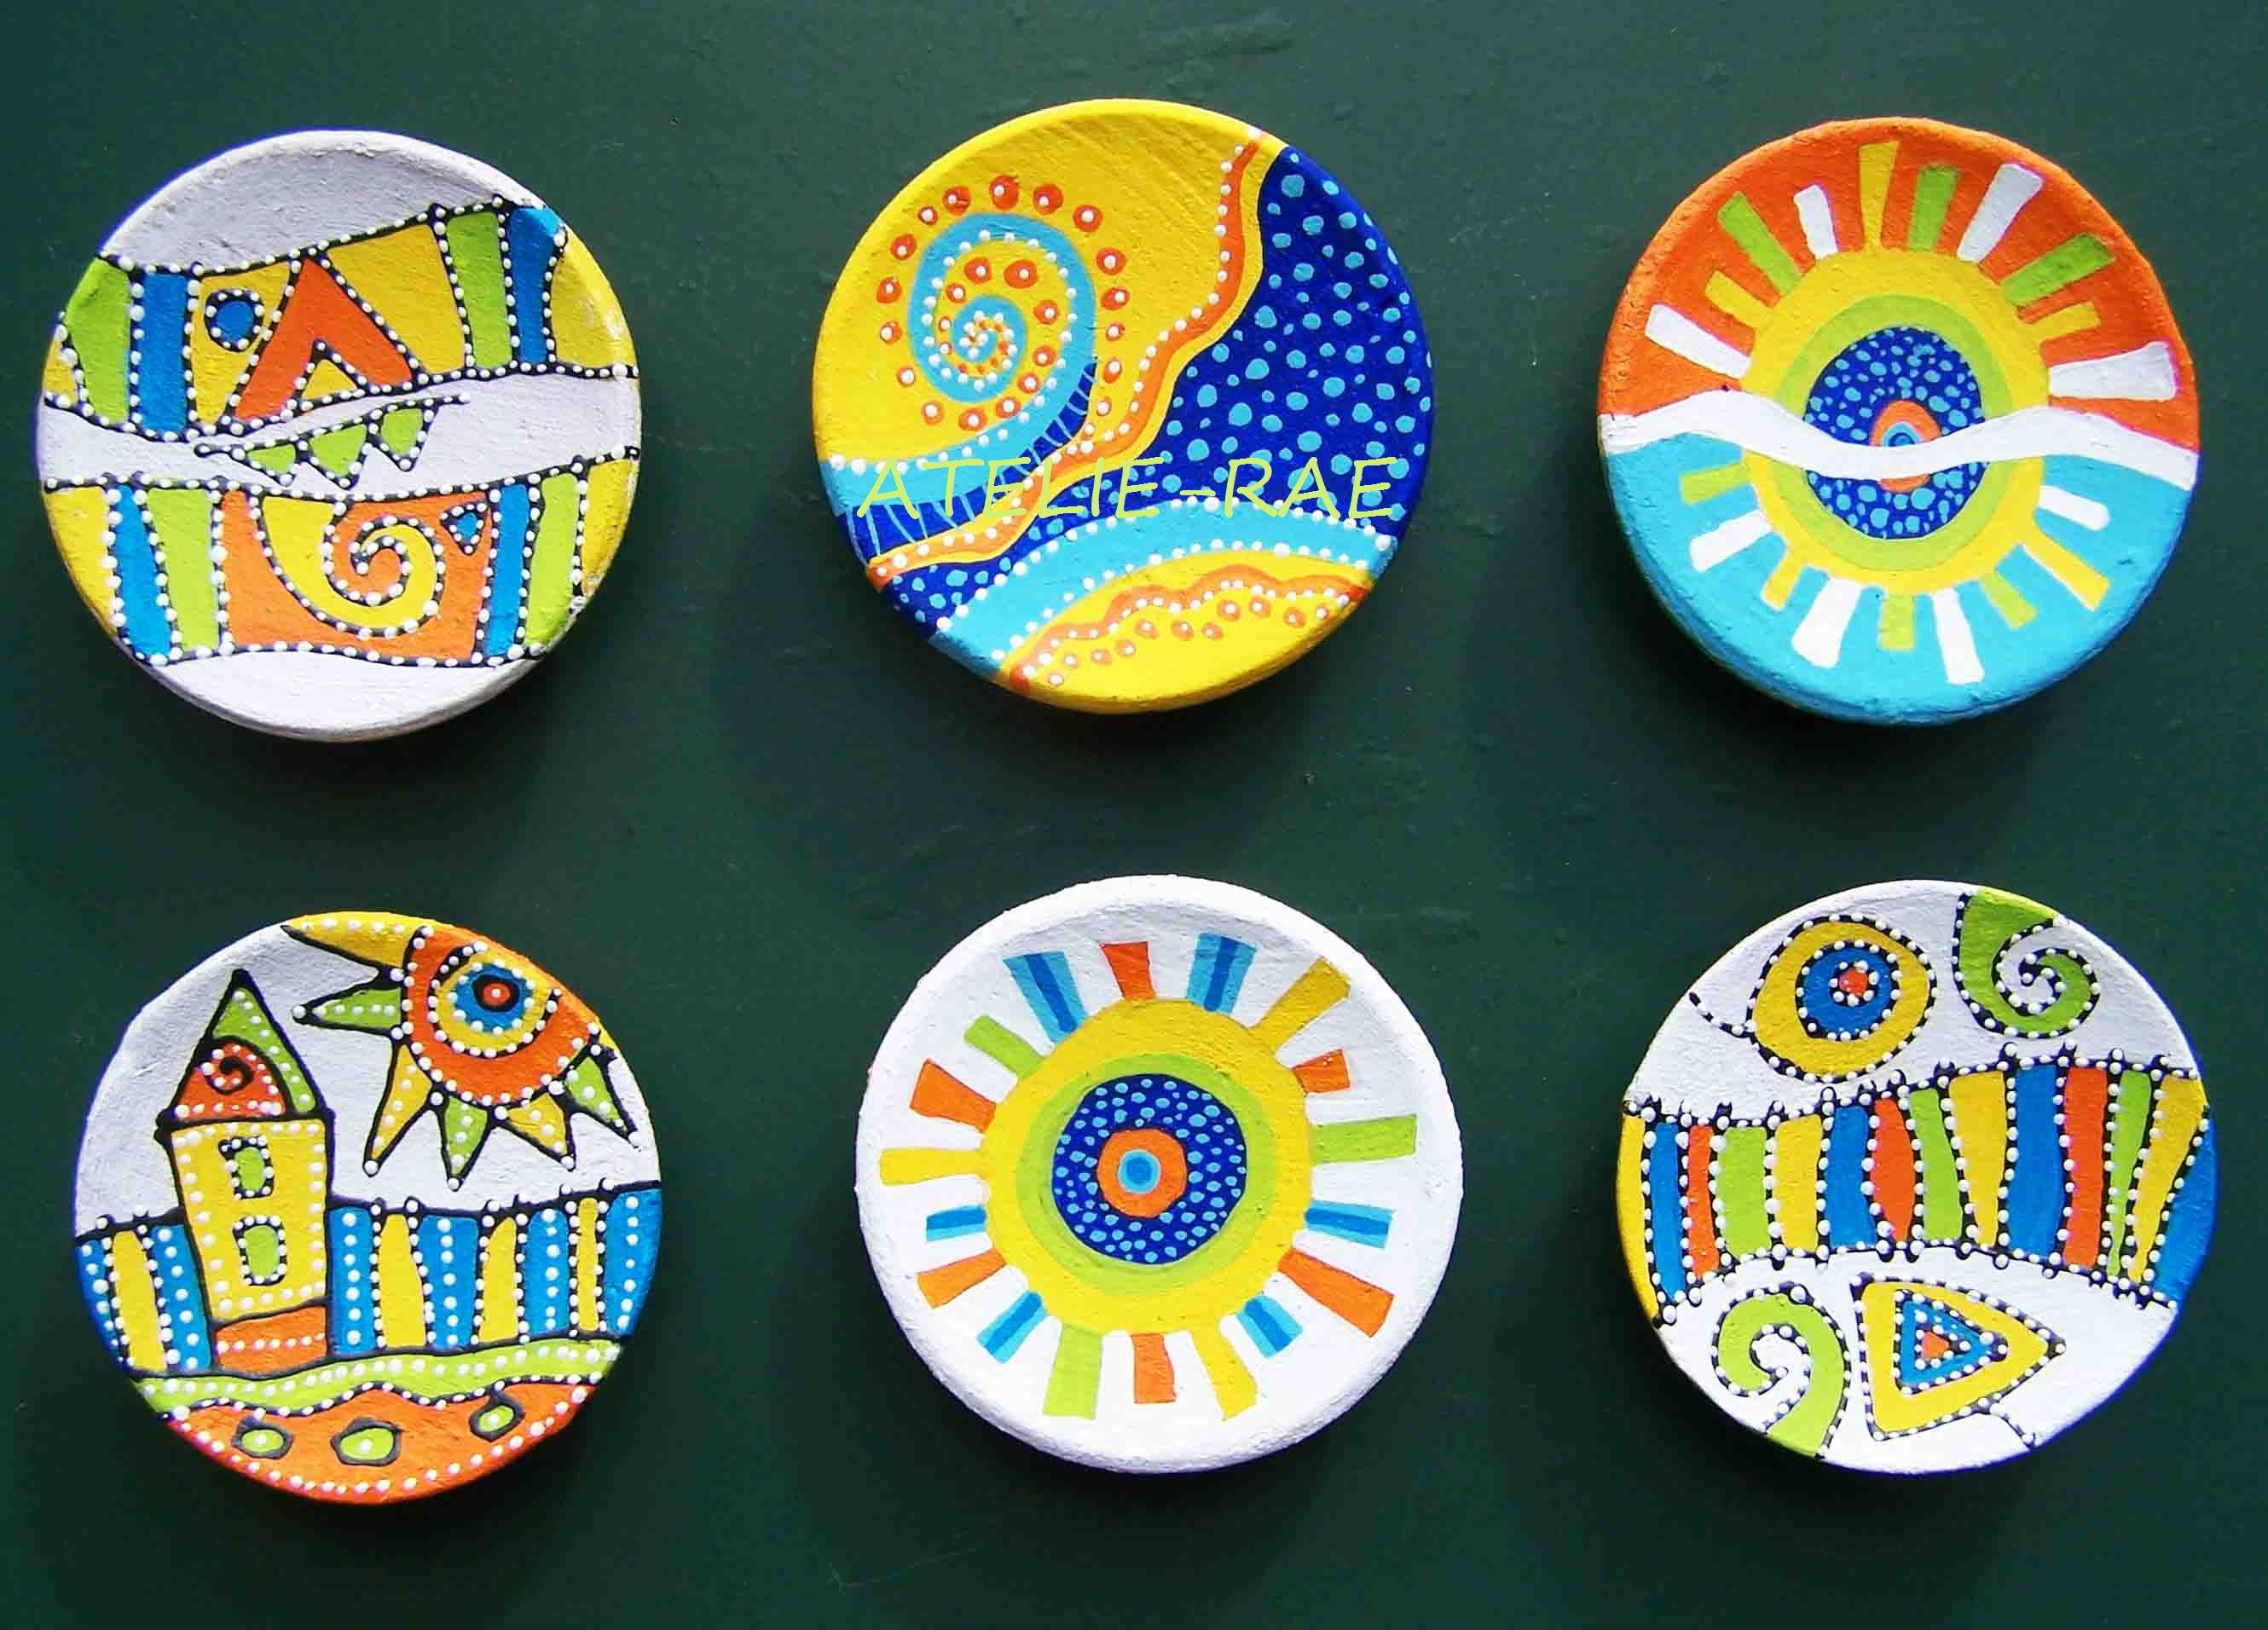 Hand Painted Ceramics Acrylic Paints Www Atelie Rae Eu Ceramic Painting Painted Ceramic Plates Hand Painted Ceramics